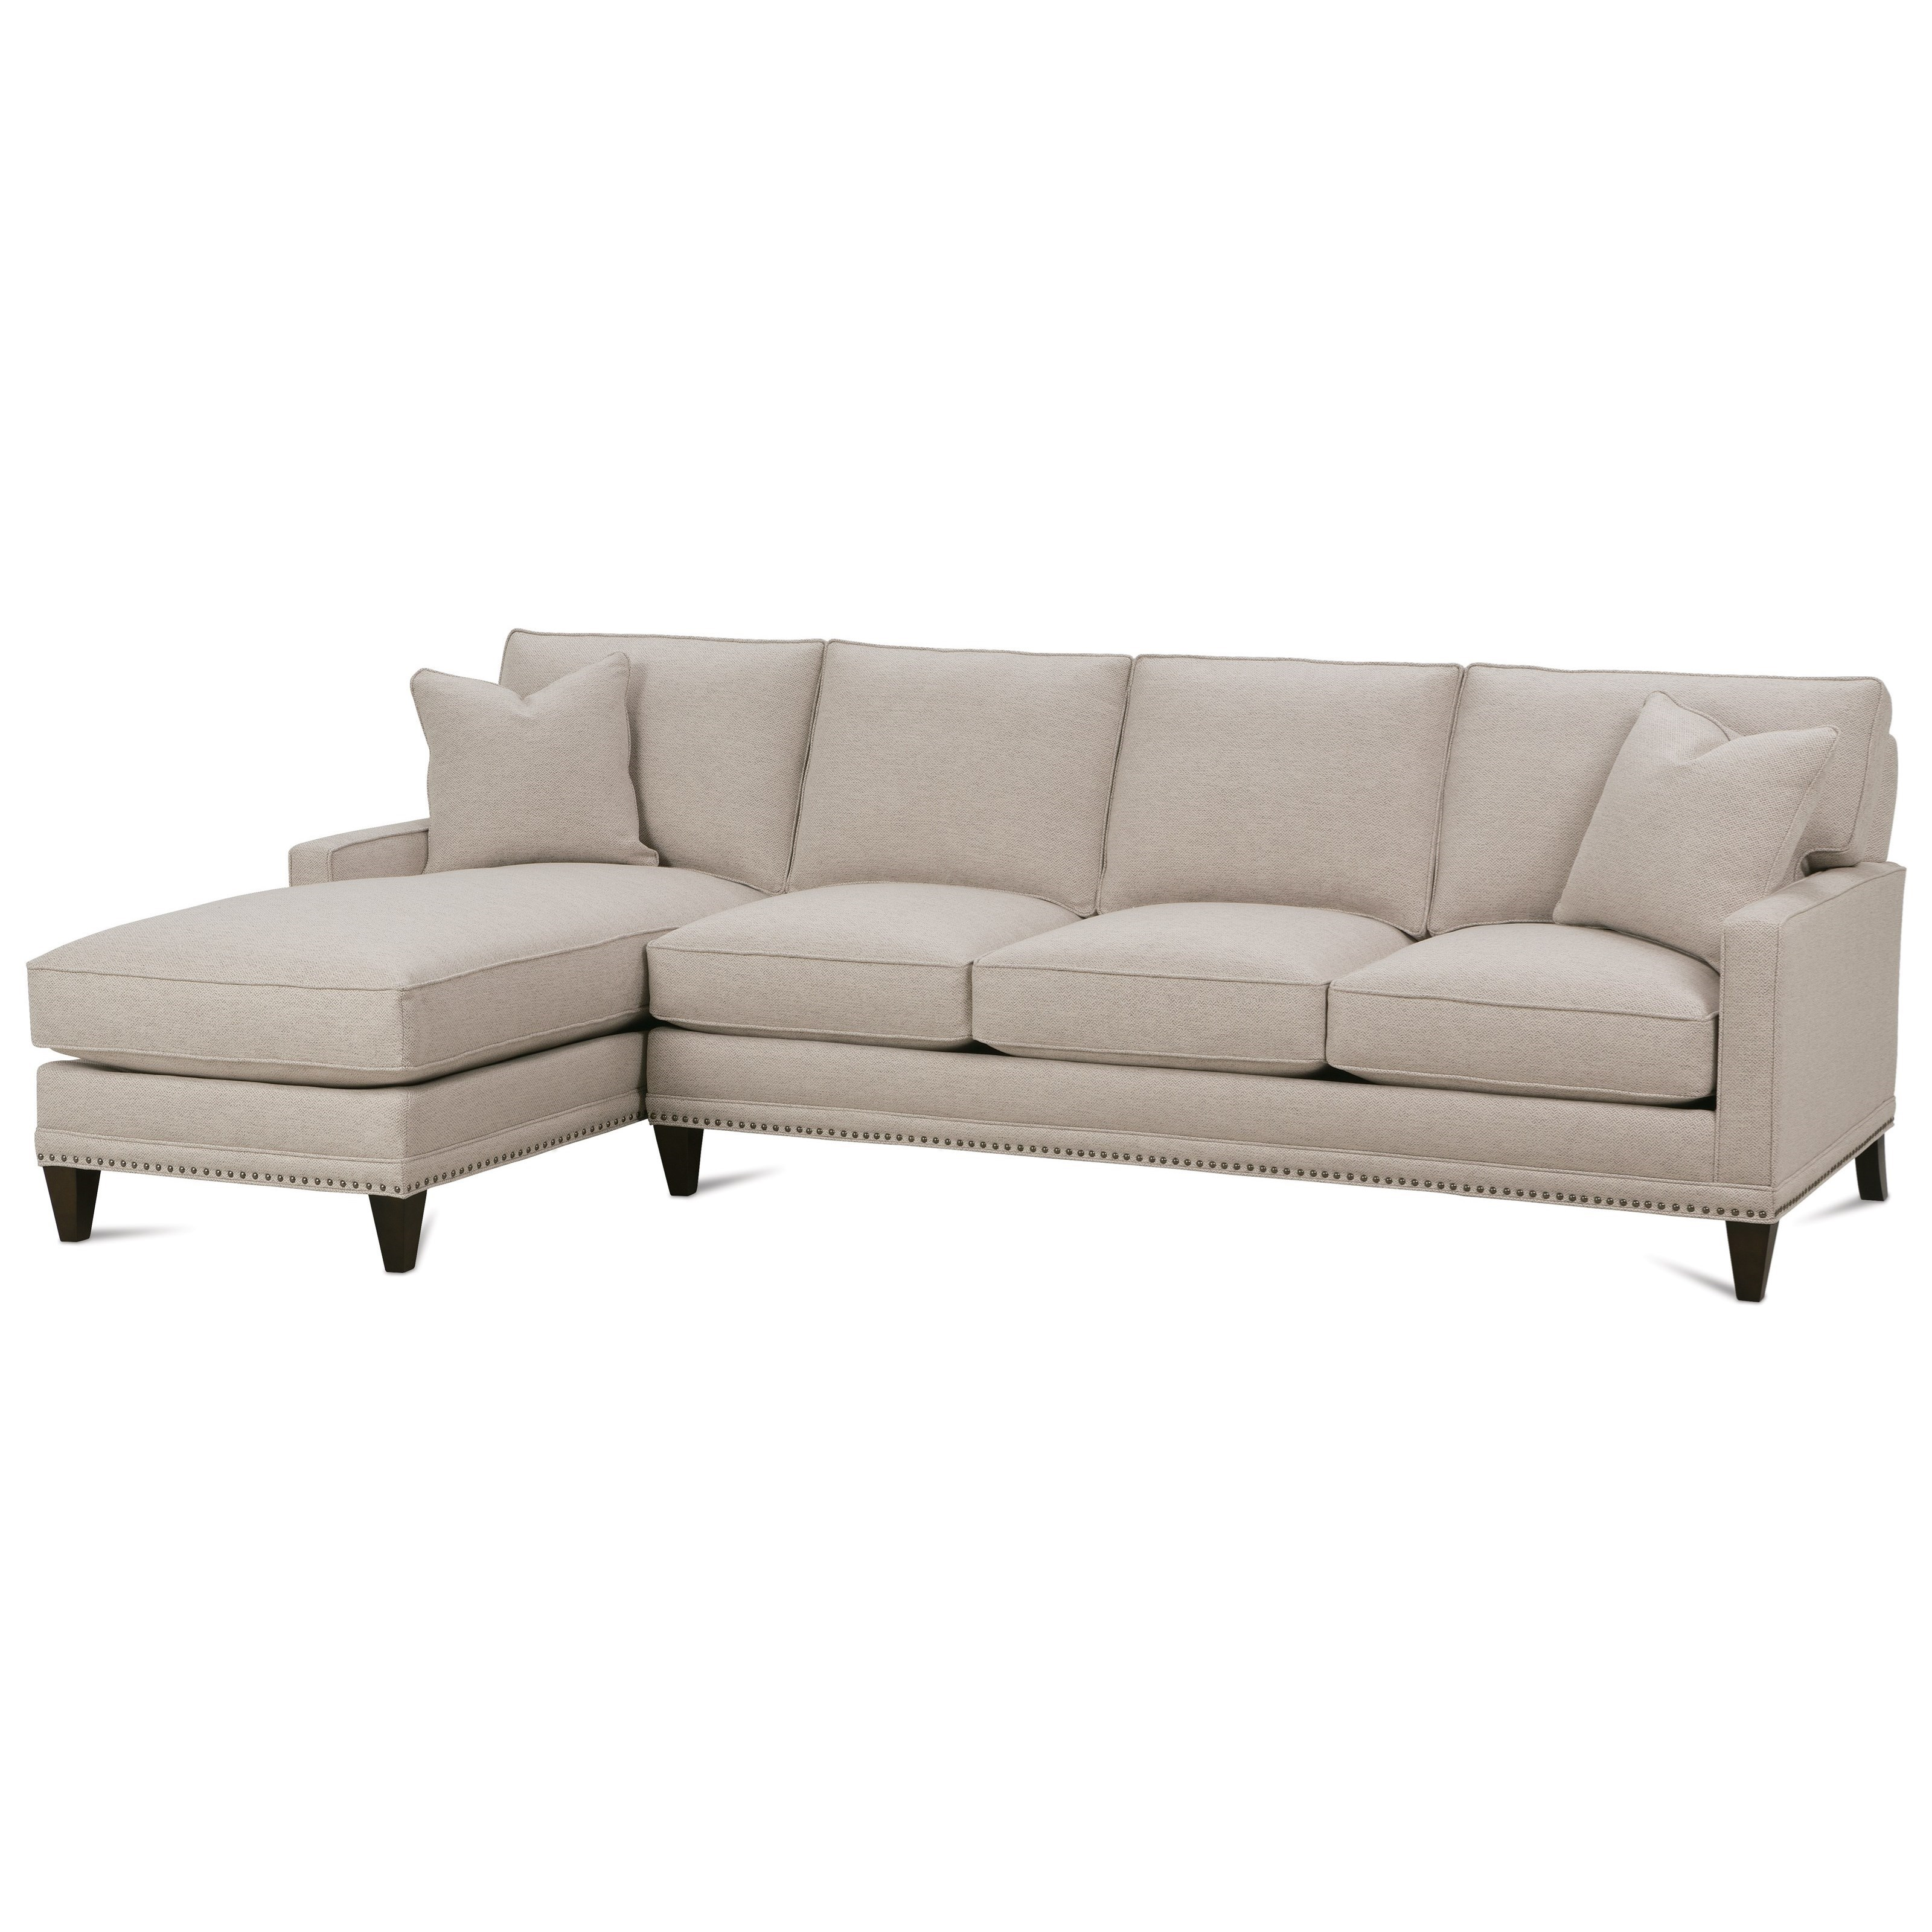 Rowe My Style IICustomizable Sofa With Left Seated Chaise ...